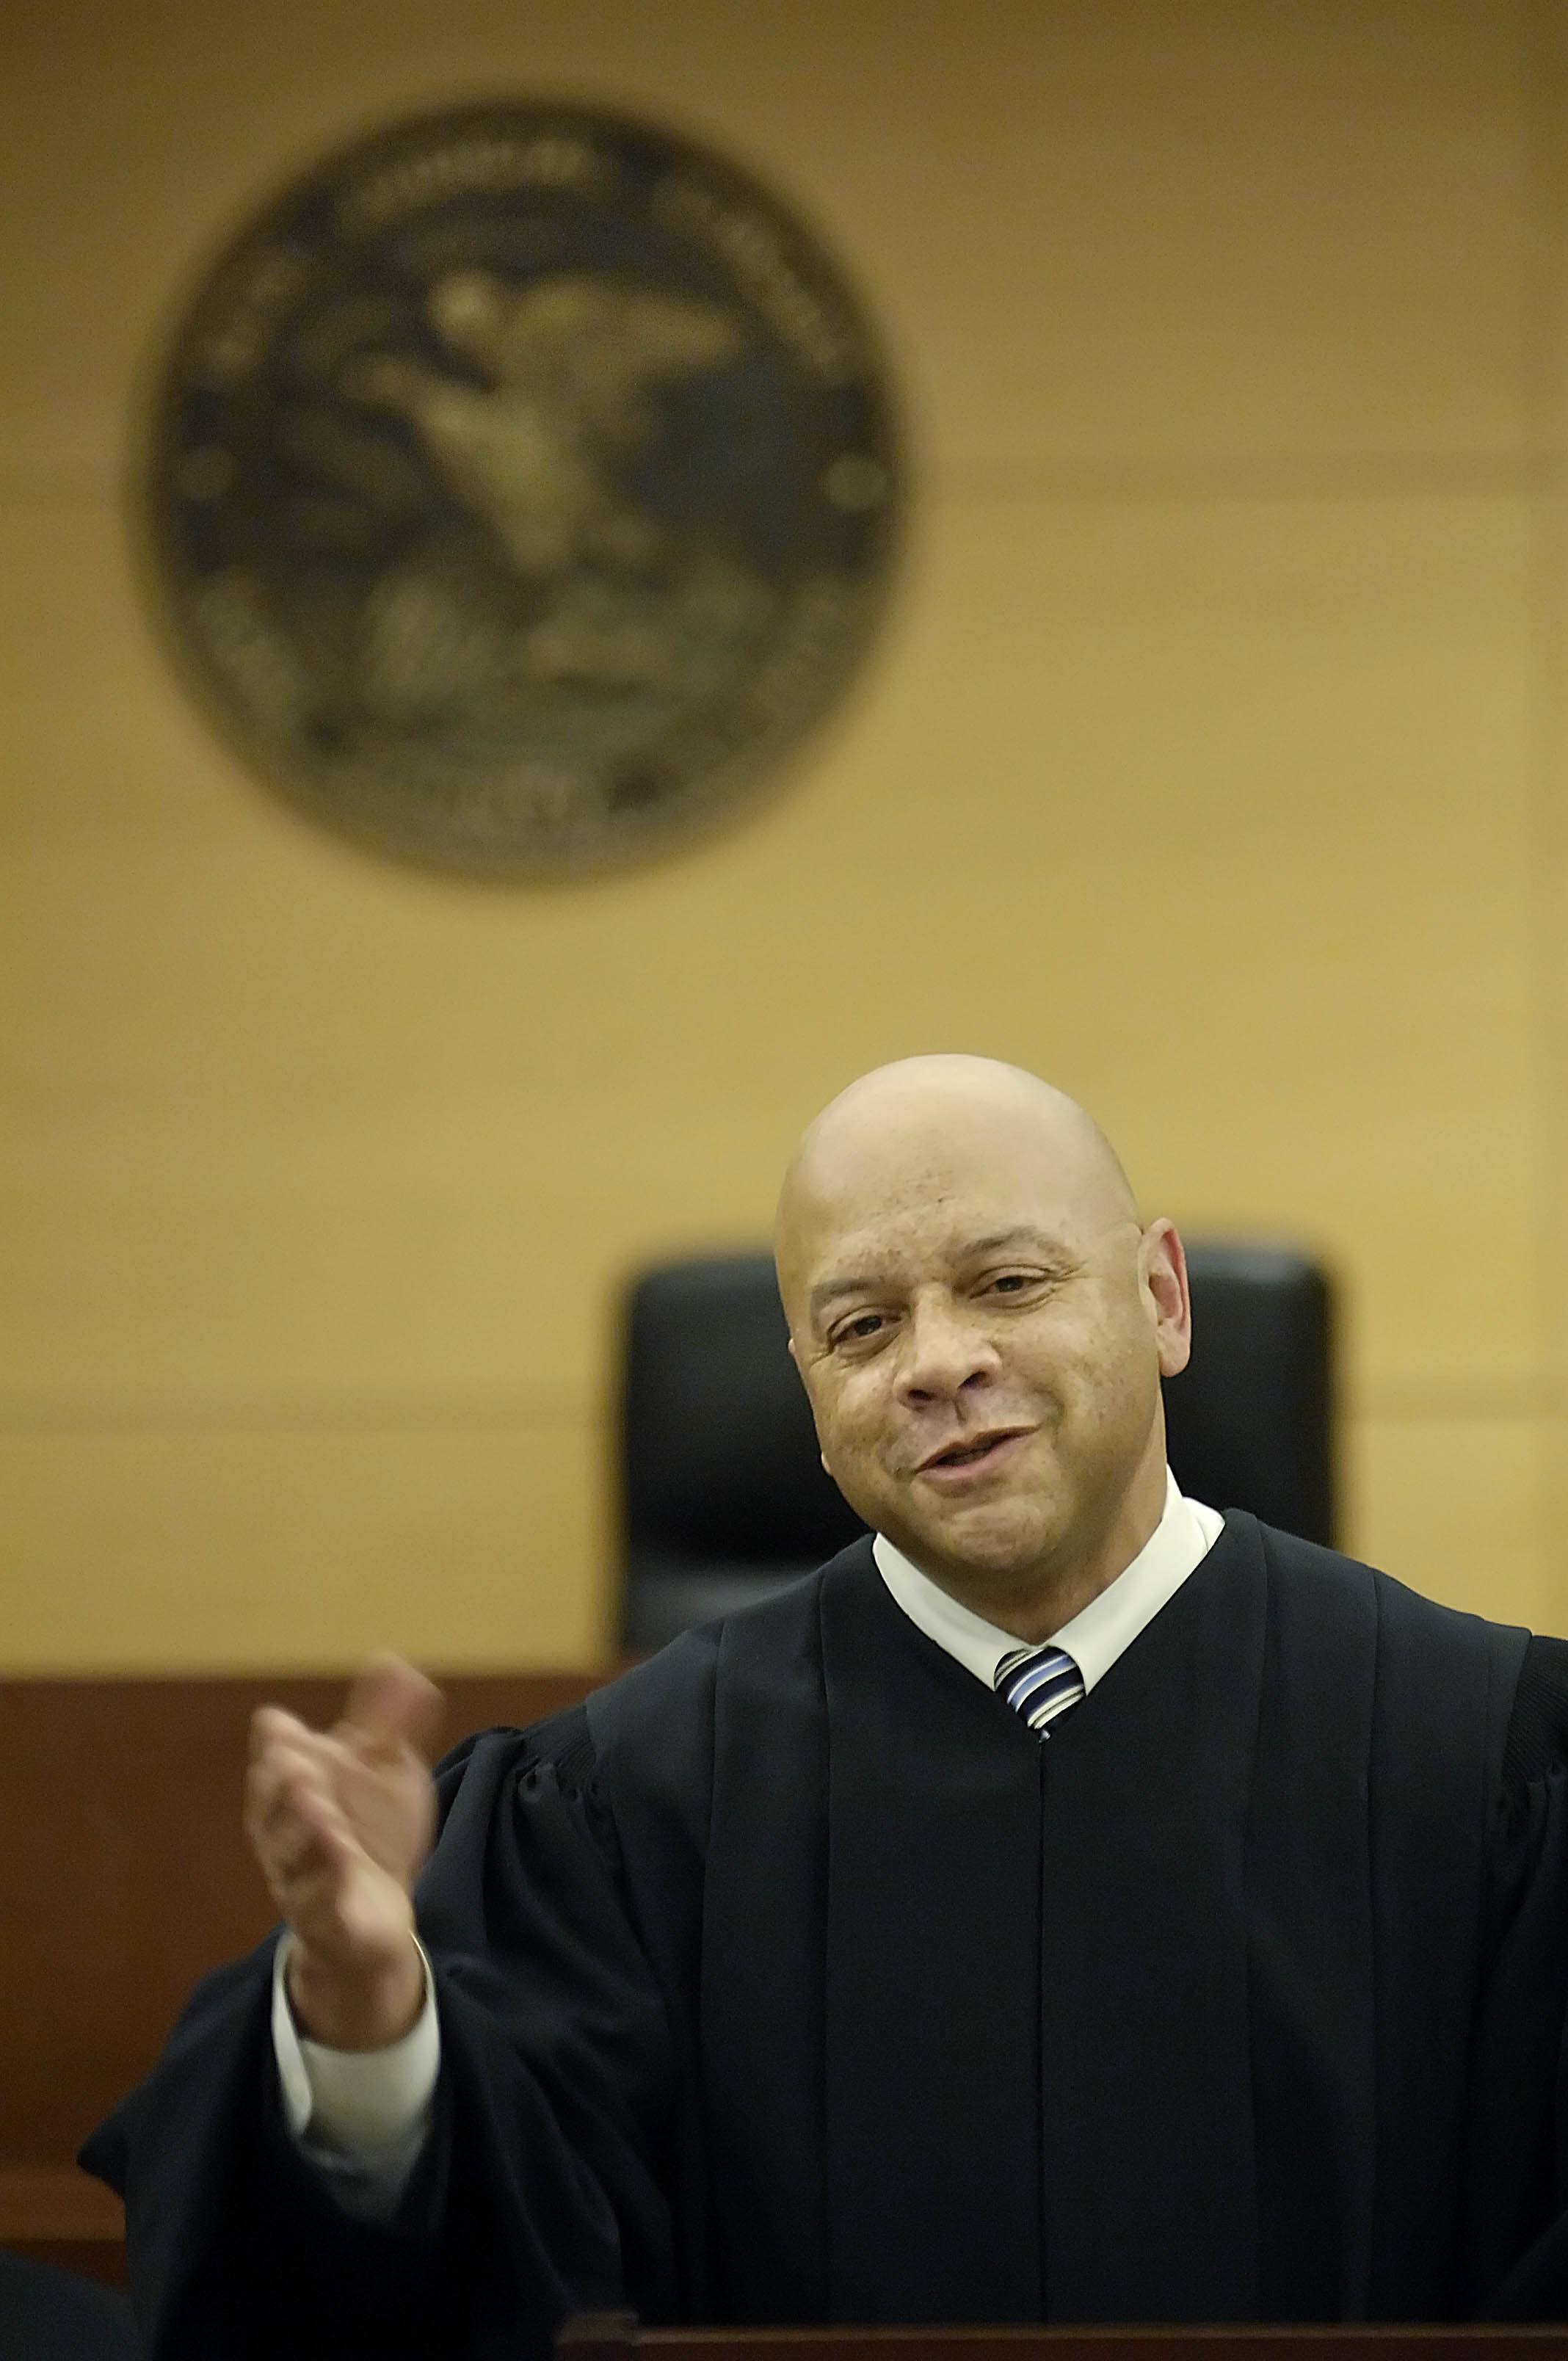 Kane County Judge F. Keith Brown speaks after taking his oath in 2009 as the 16th Judicial Circuit's chief judge.